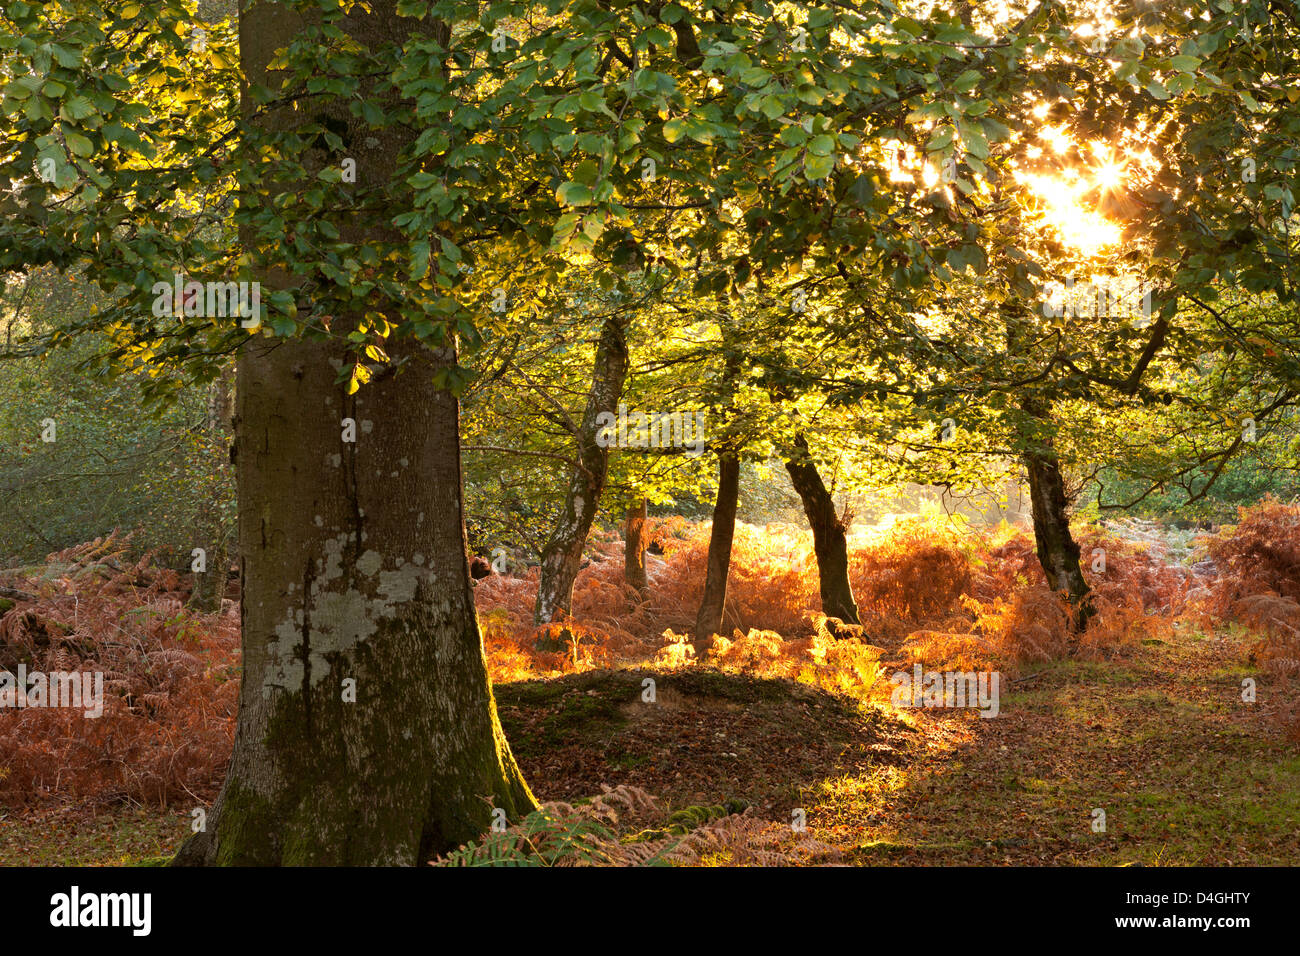 Early morning sunlight illuminates an autumnal deciduous woodland in the New Forest National Park, Hampshire, England. - Stock Image